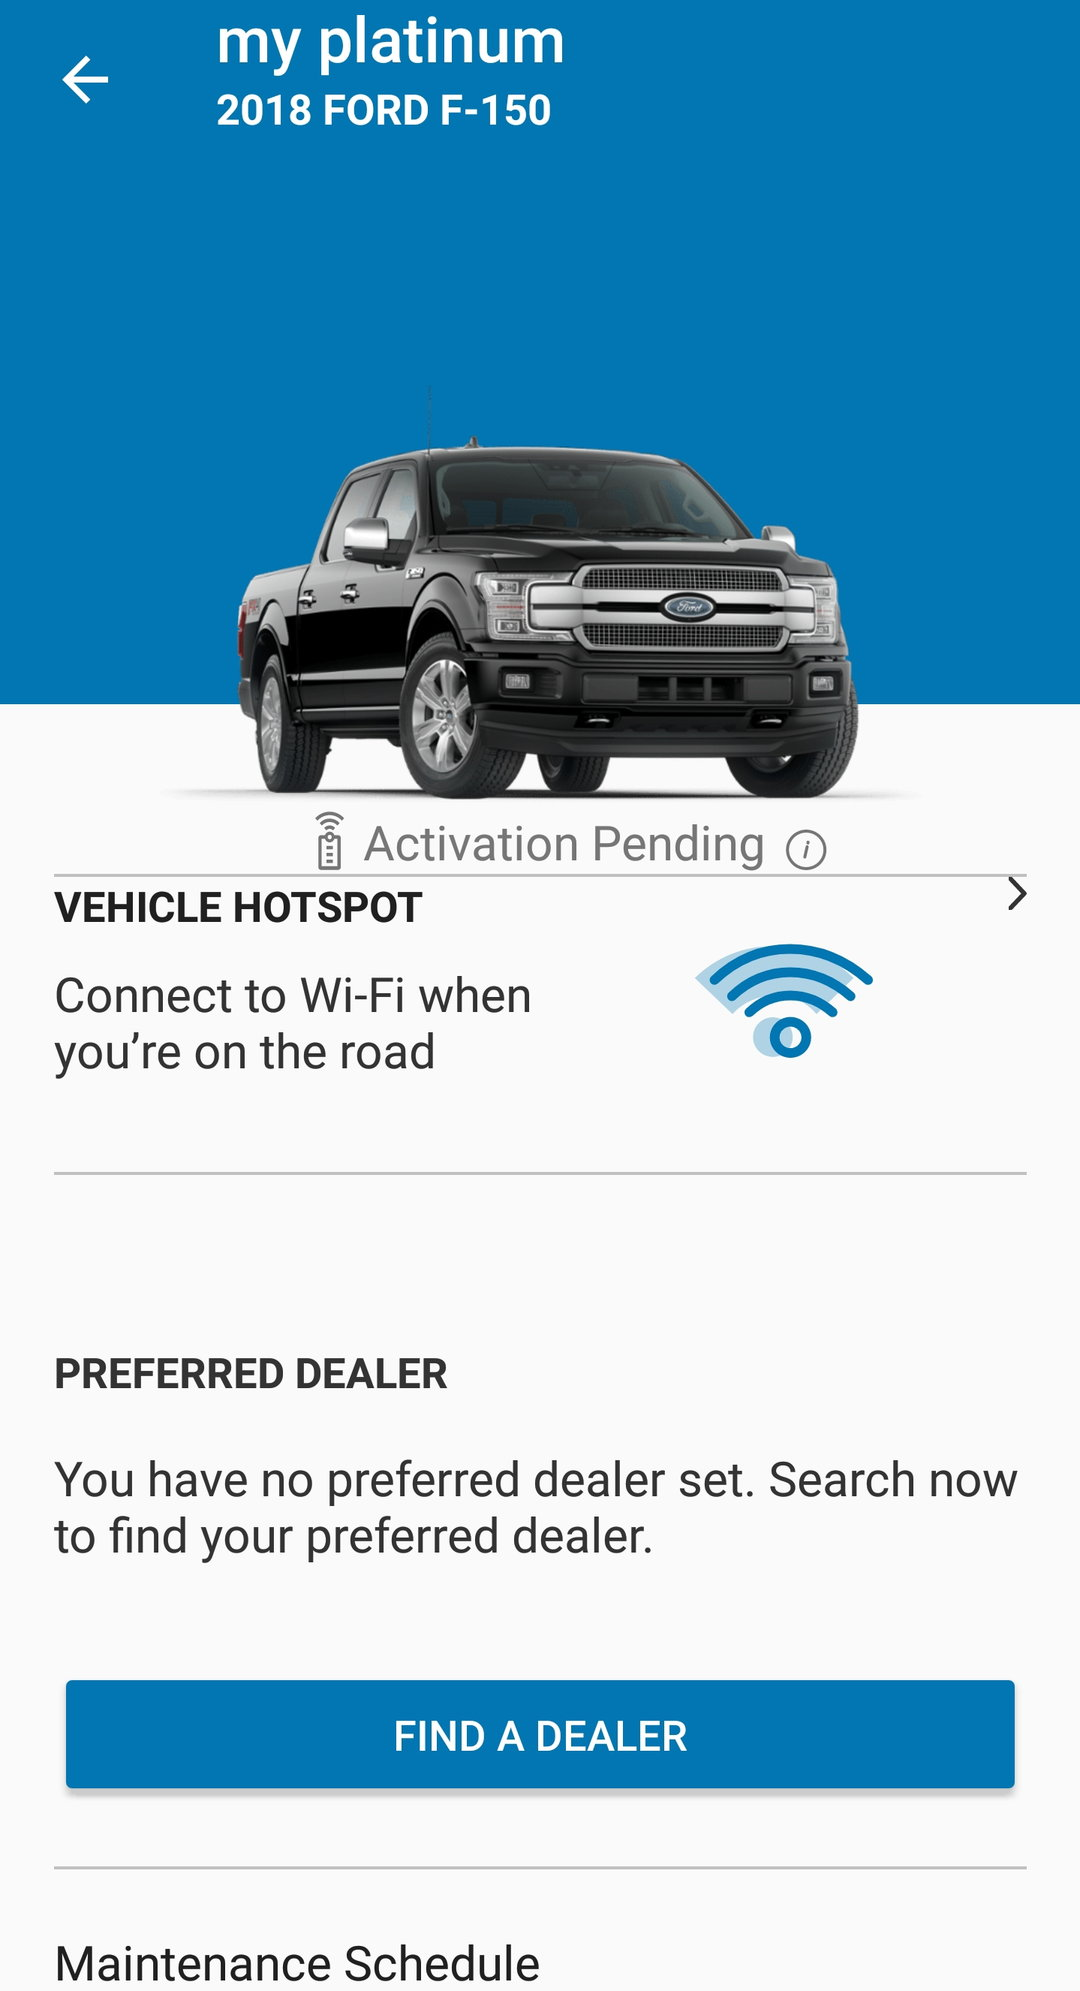 fordpass activation pending issue